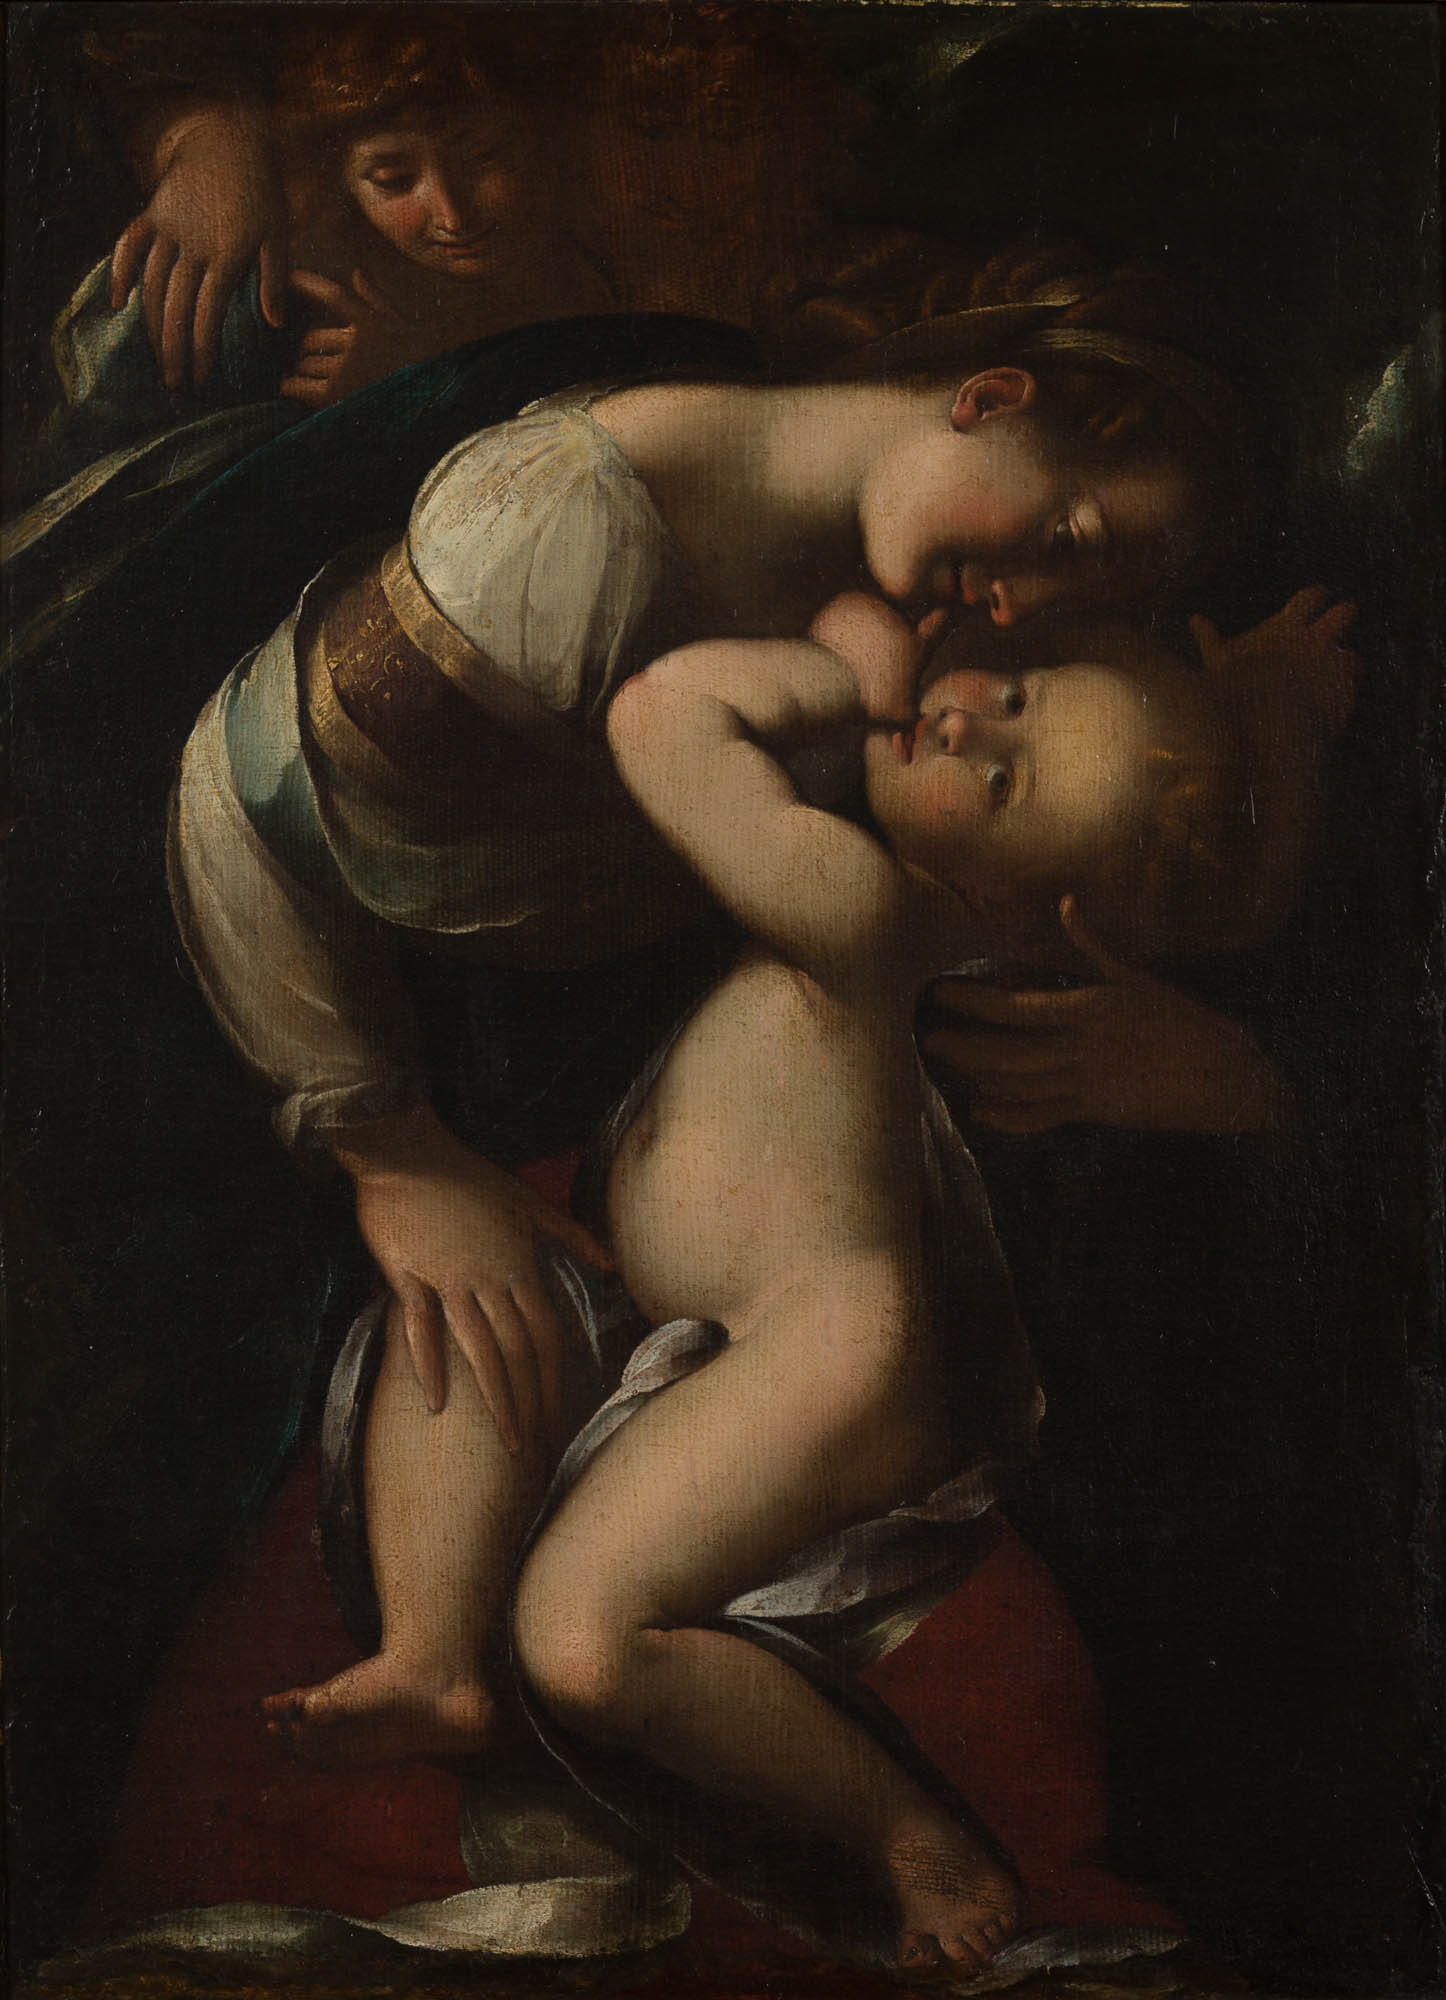 Madonna and Child with Two Angels, After Giulio Cesare Procaccini (1574-1625).